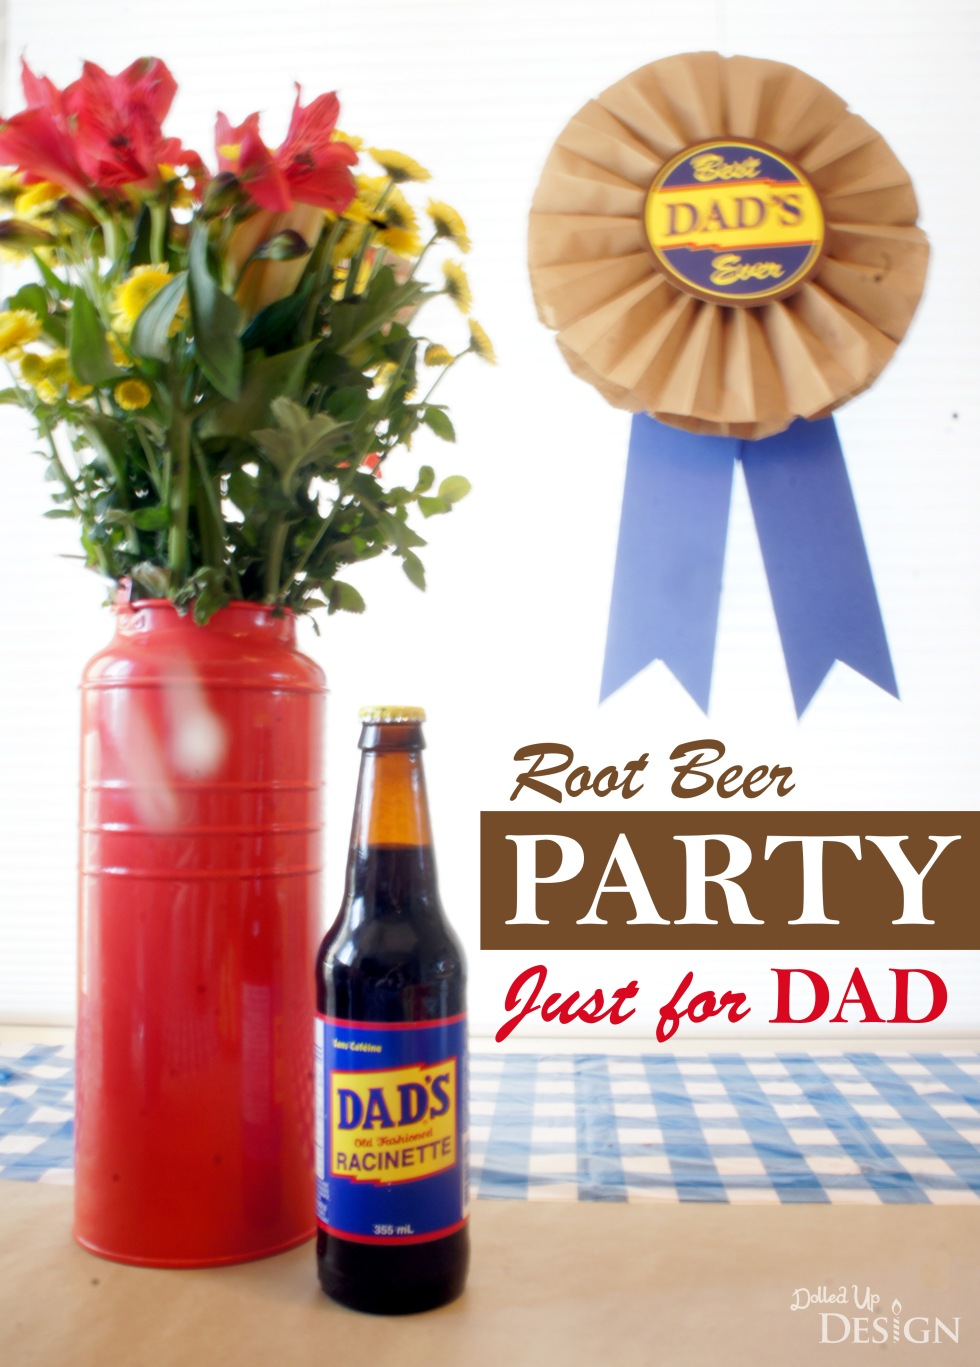 Dad's Root Beer Party for Father's Day